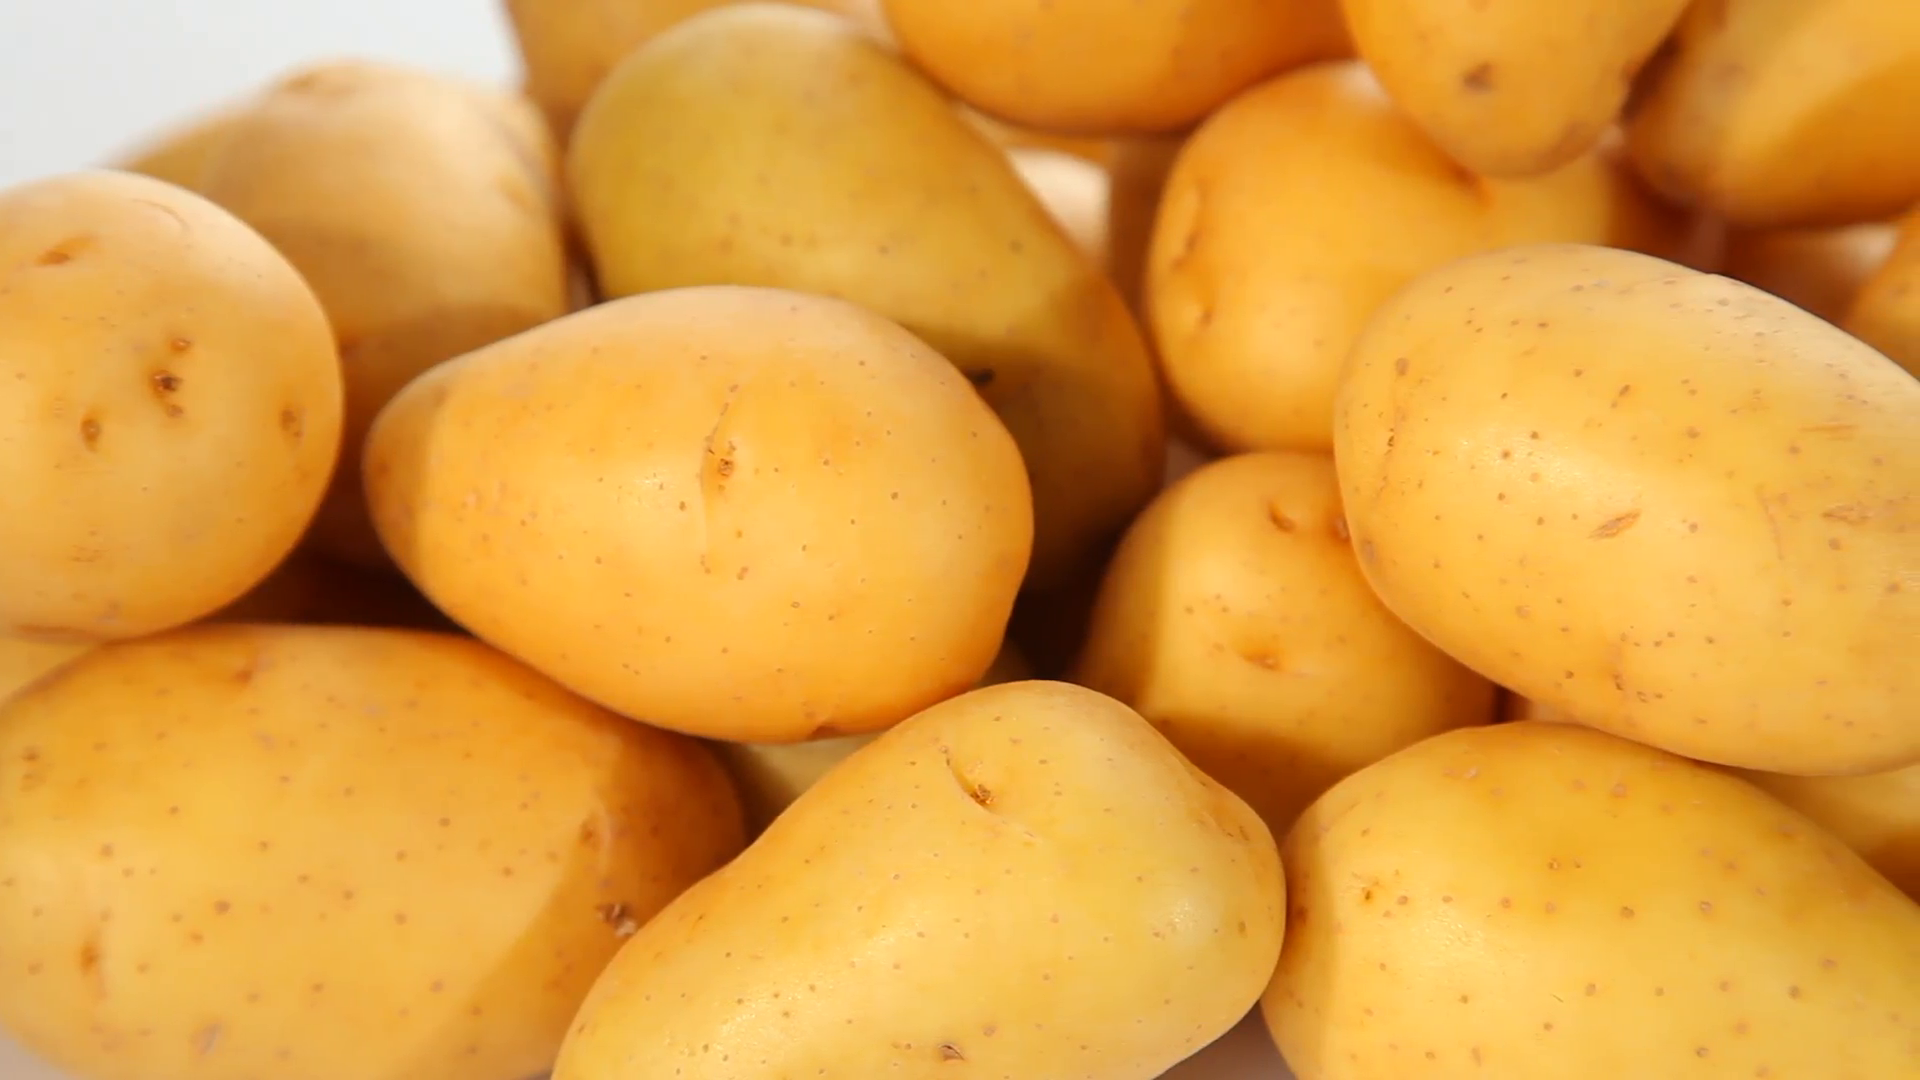 Fresh potatoes background Stock Video Footage - Videoblocks